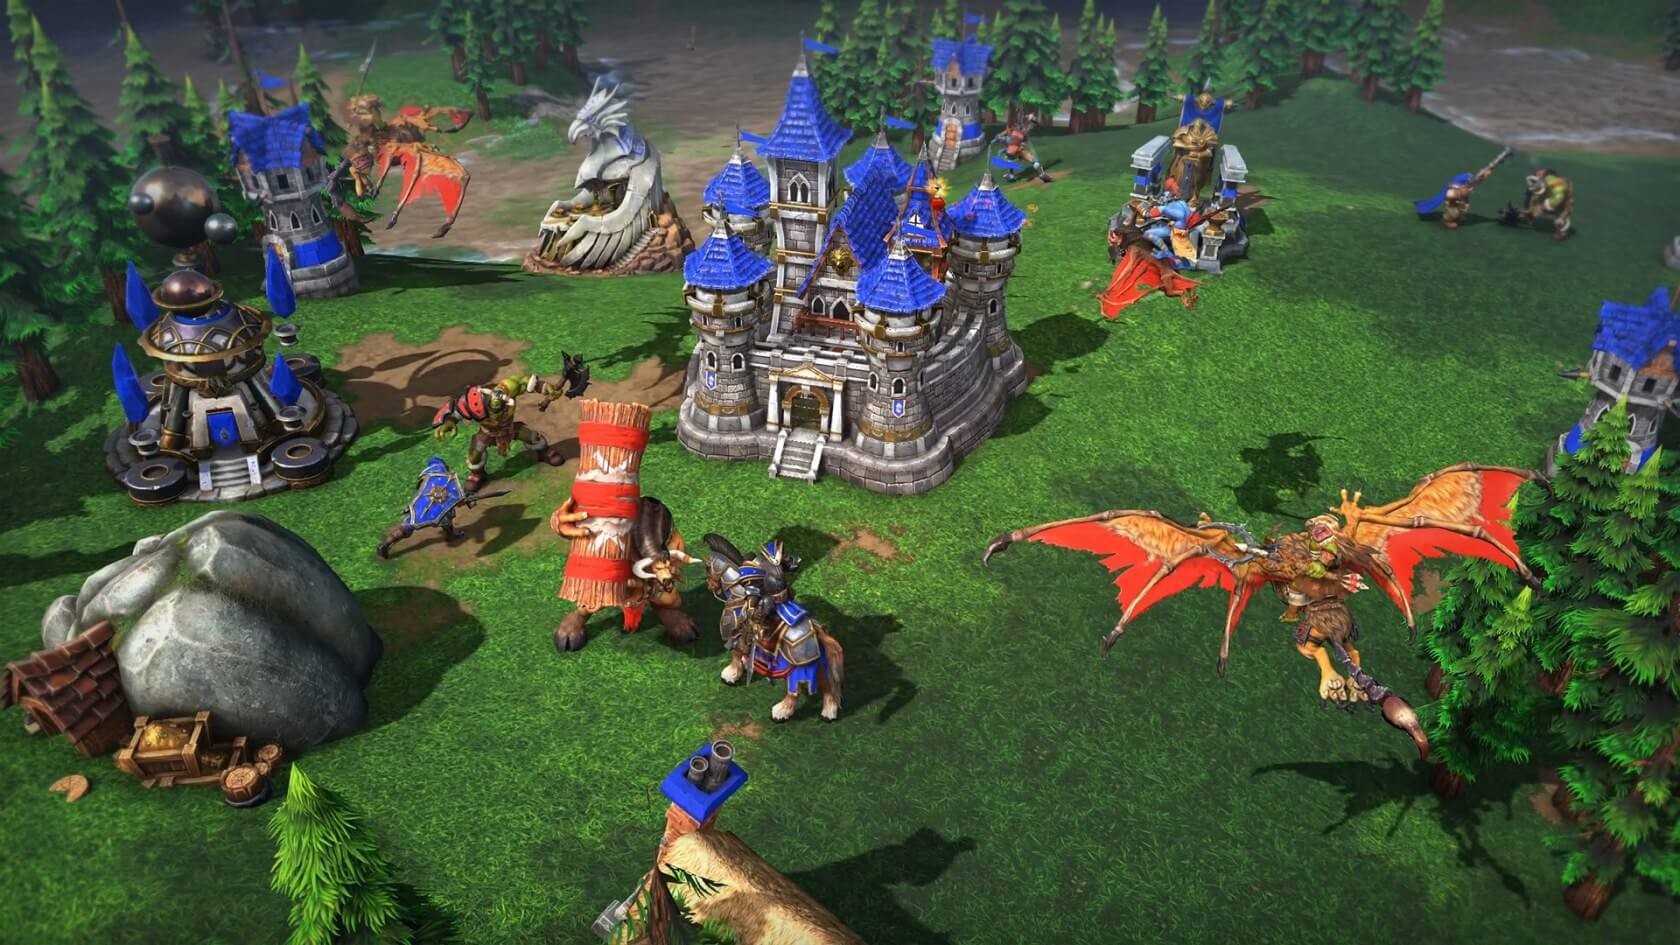 c05b7fda5246 Blizzard announces long-awaited Warcraft 3 remaster at Blizzcon ...